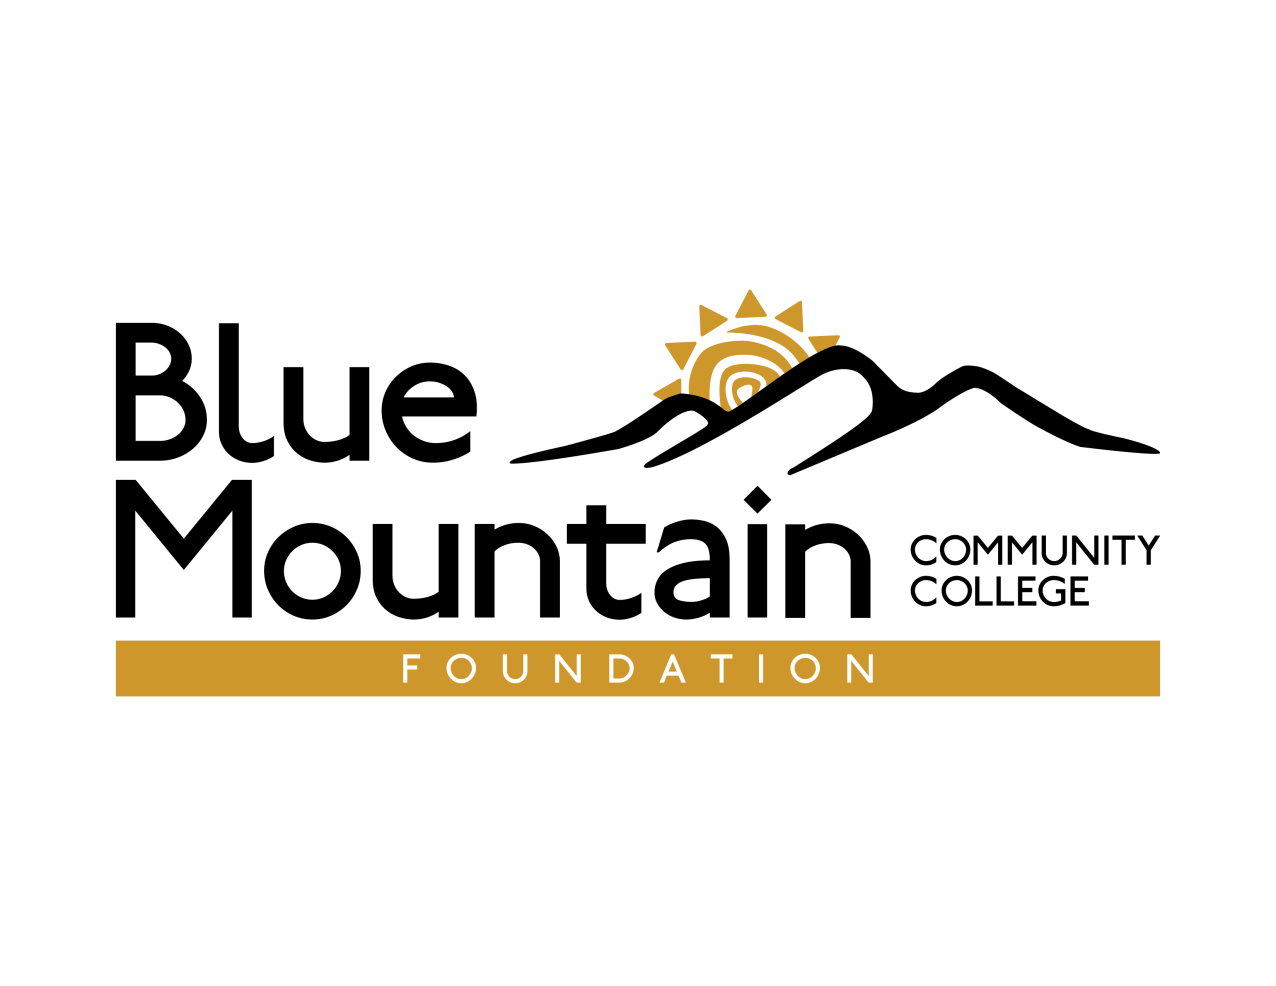 BMCC 2017 Foundation CMYK Logo-01